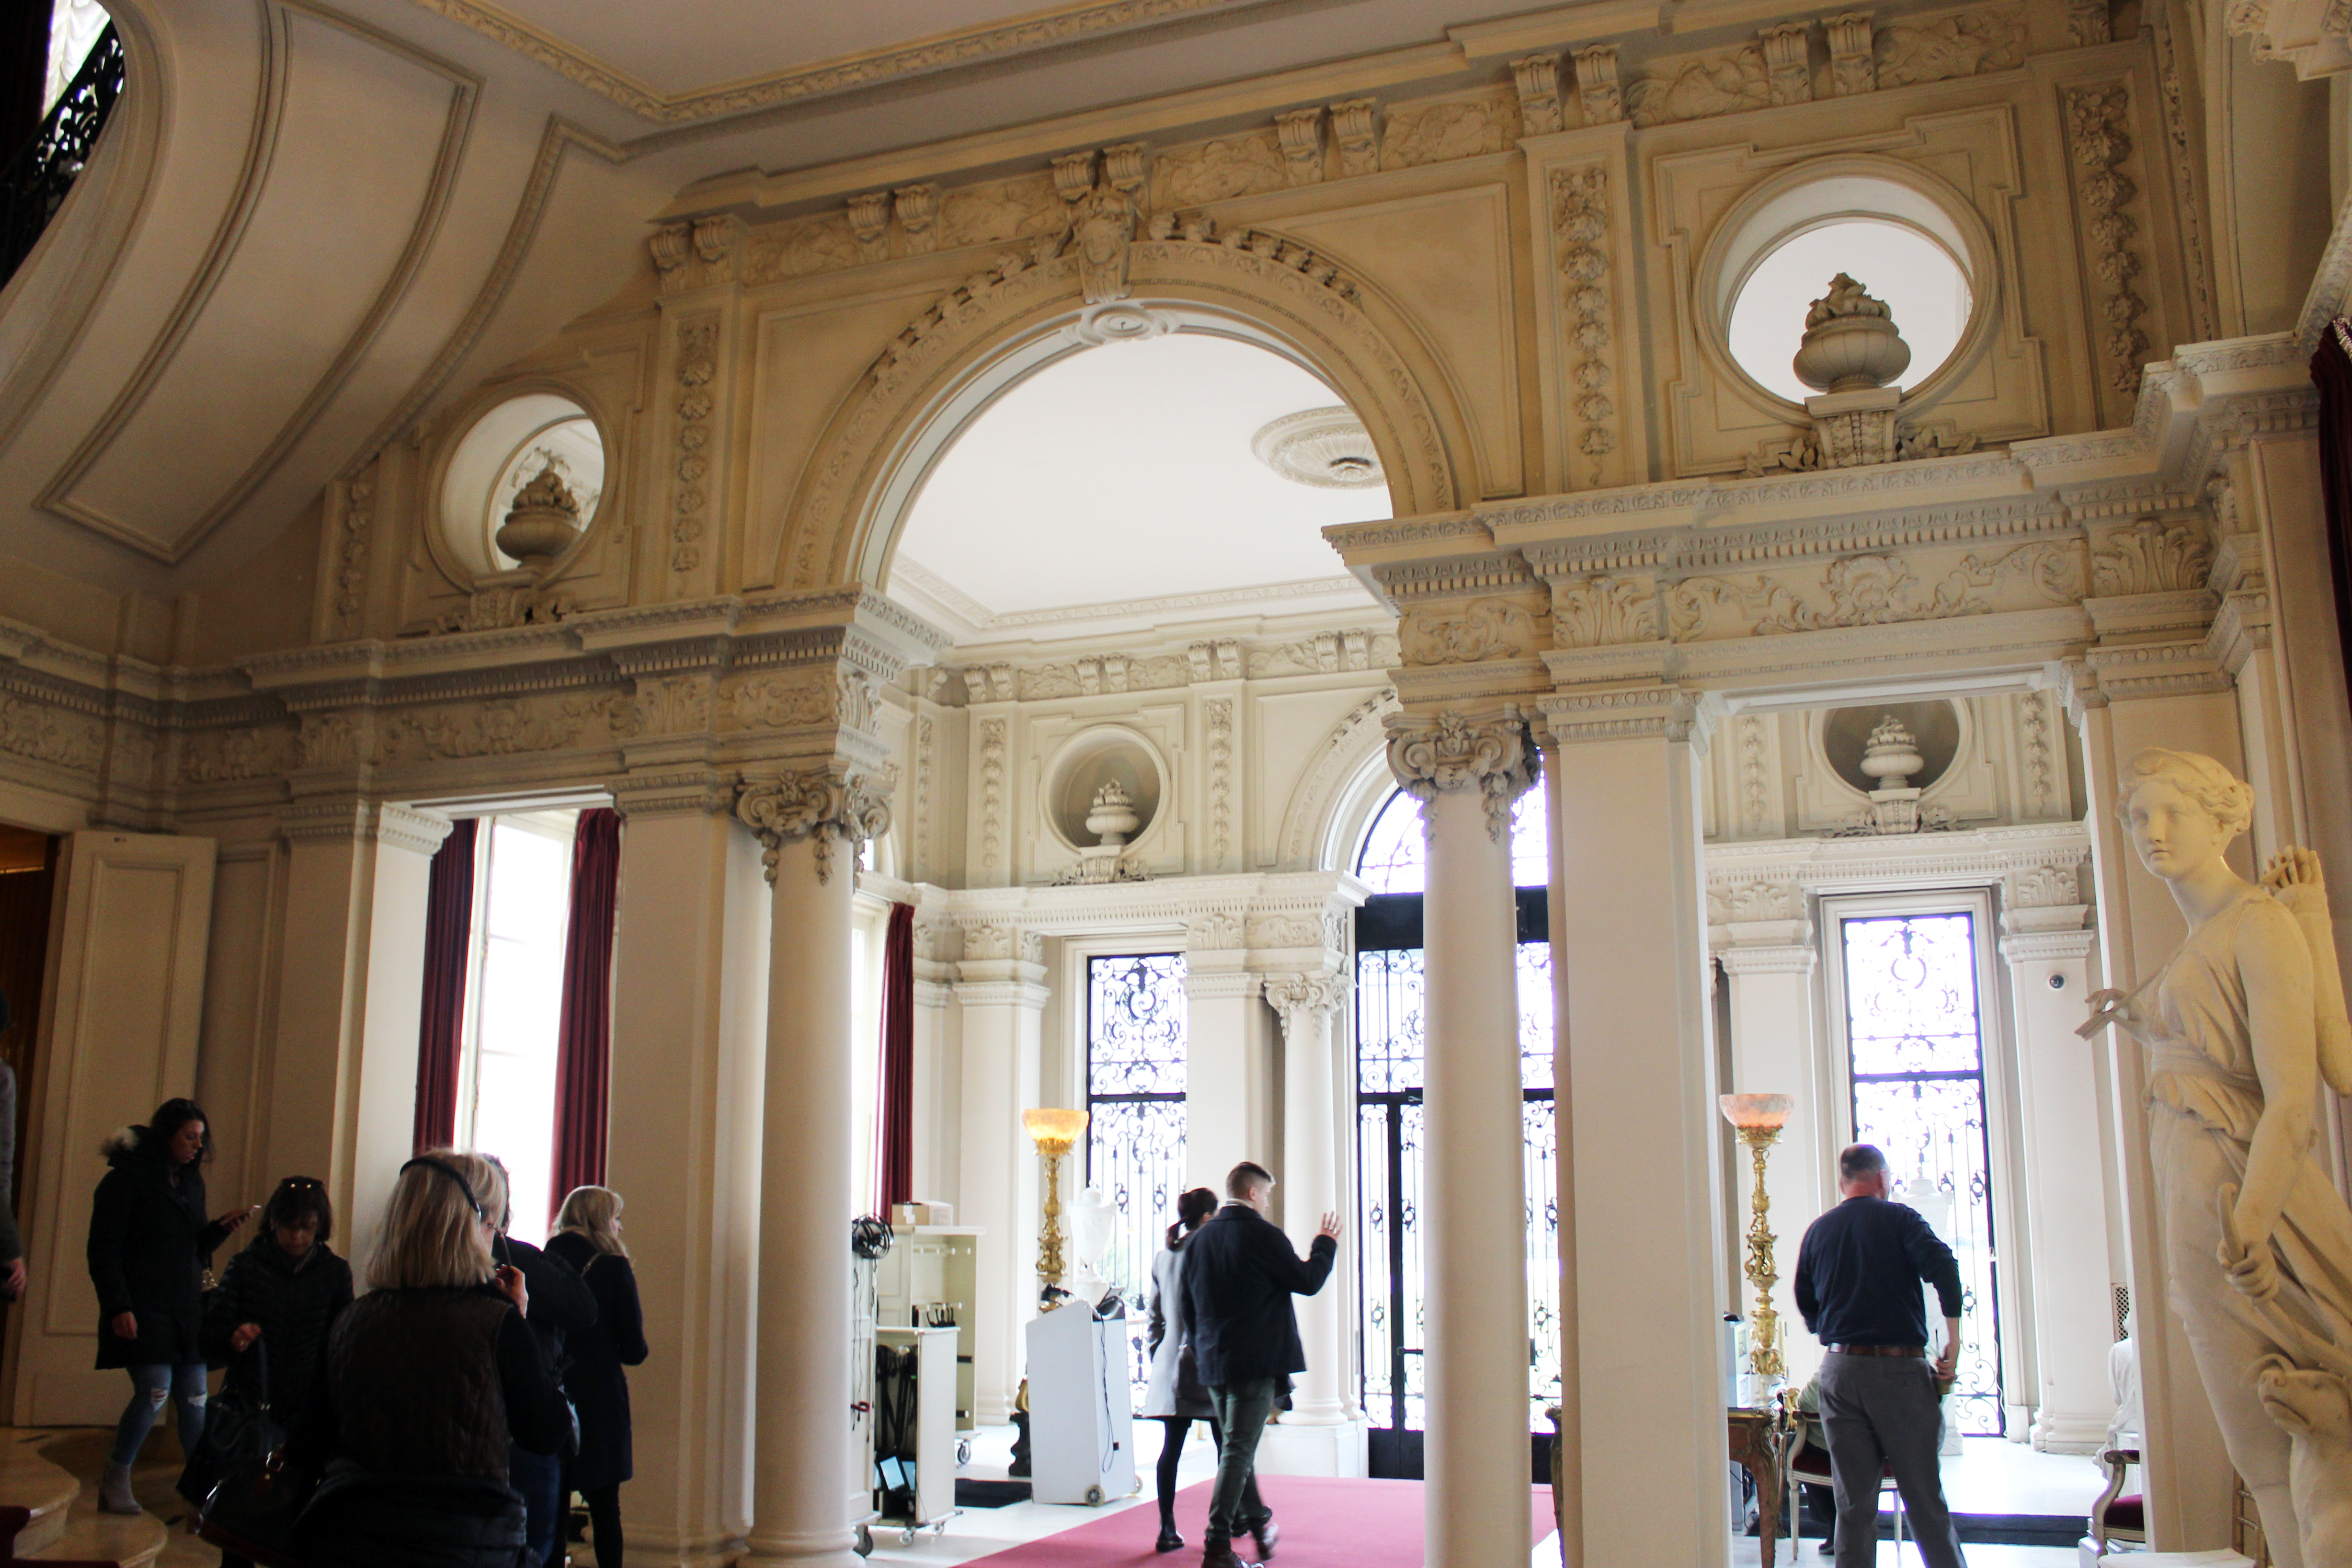 Rosecliff Mansion - Newport RI | The entryway of Rosecliff features an open-air colonnade, paired ionic columns, second story pilasters, and a roofline balustrade.